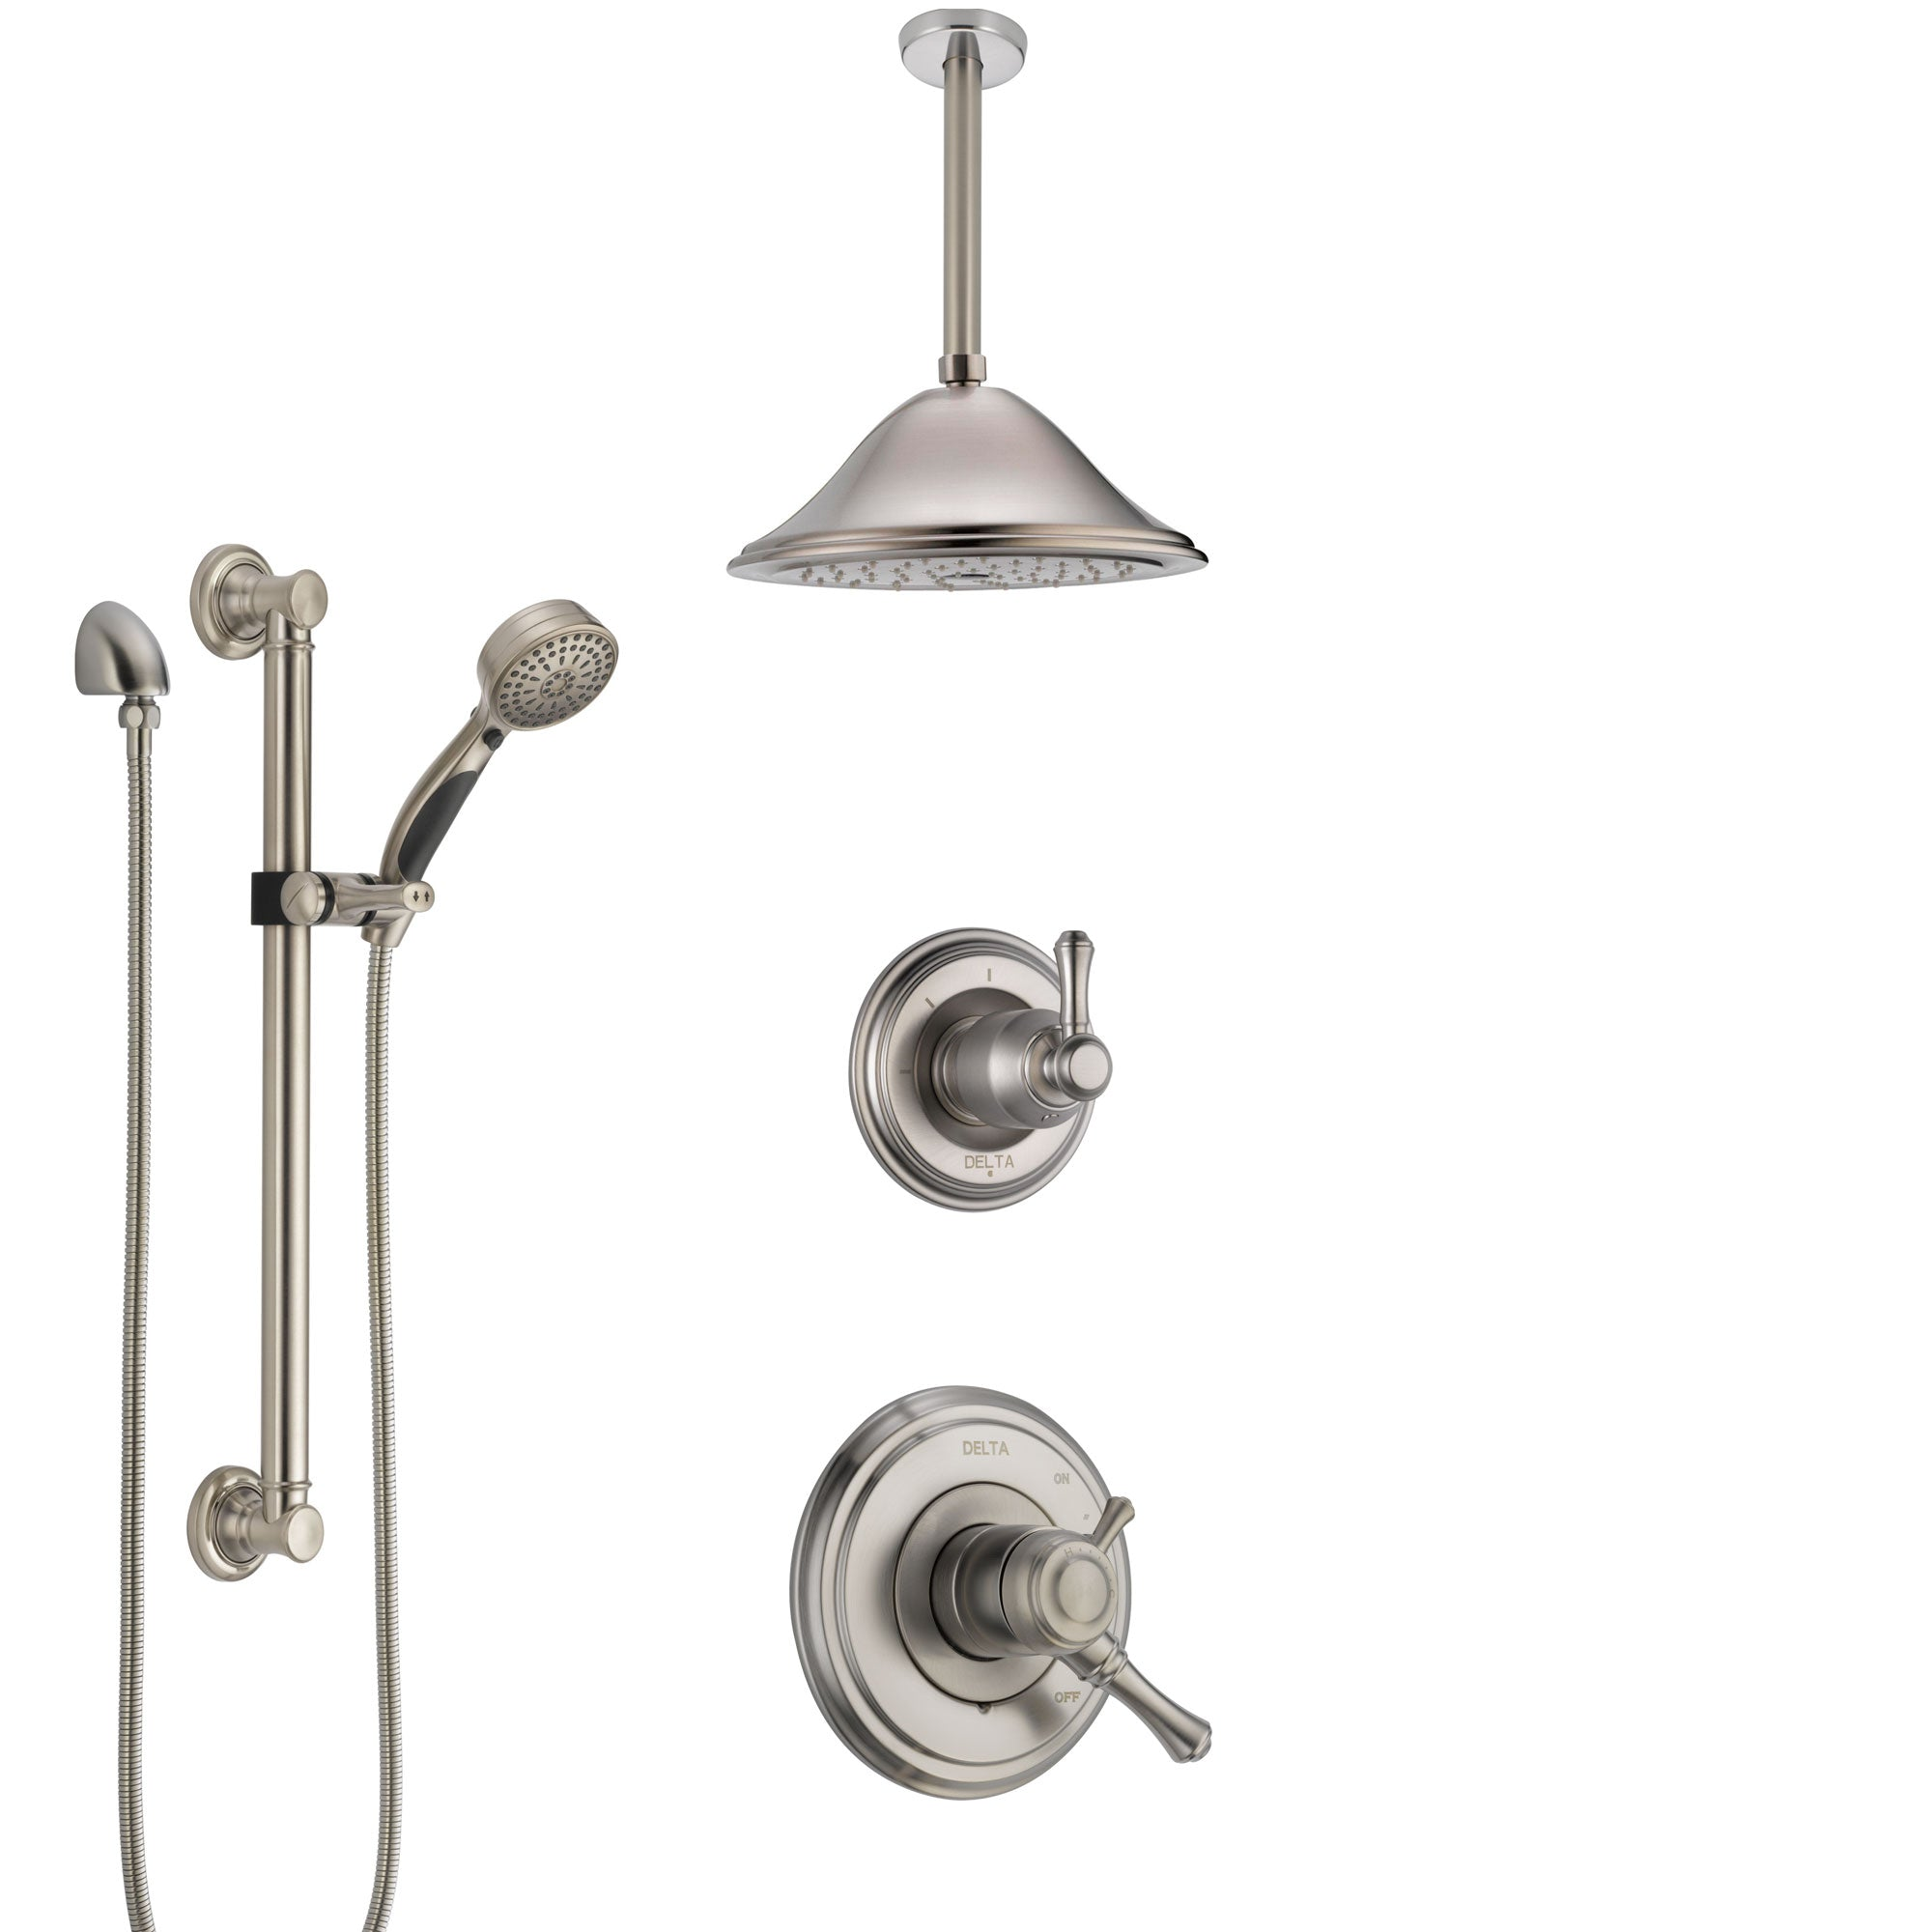 Delta Cassidy Dual Control Handle Stainless Steel Finish Shower System, Diverter, Ceiling Mount Showerhead, and Hand Shower with Grab Bar SS1797SS5